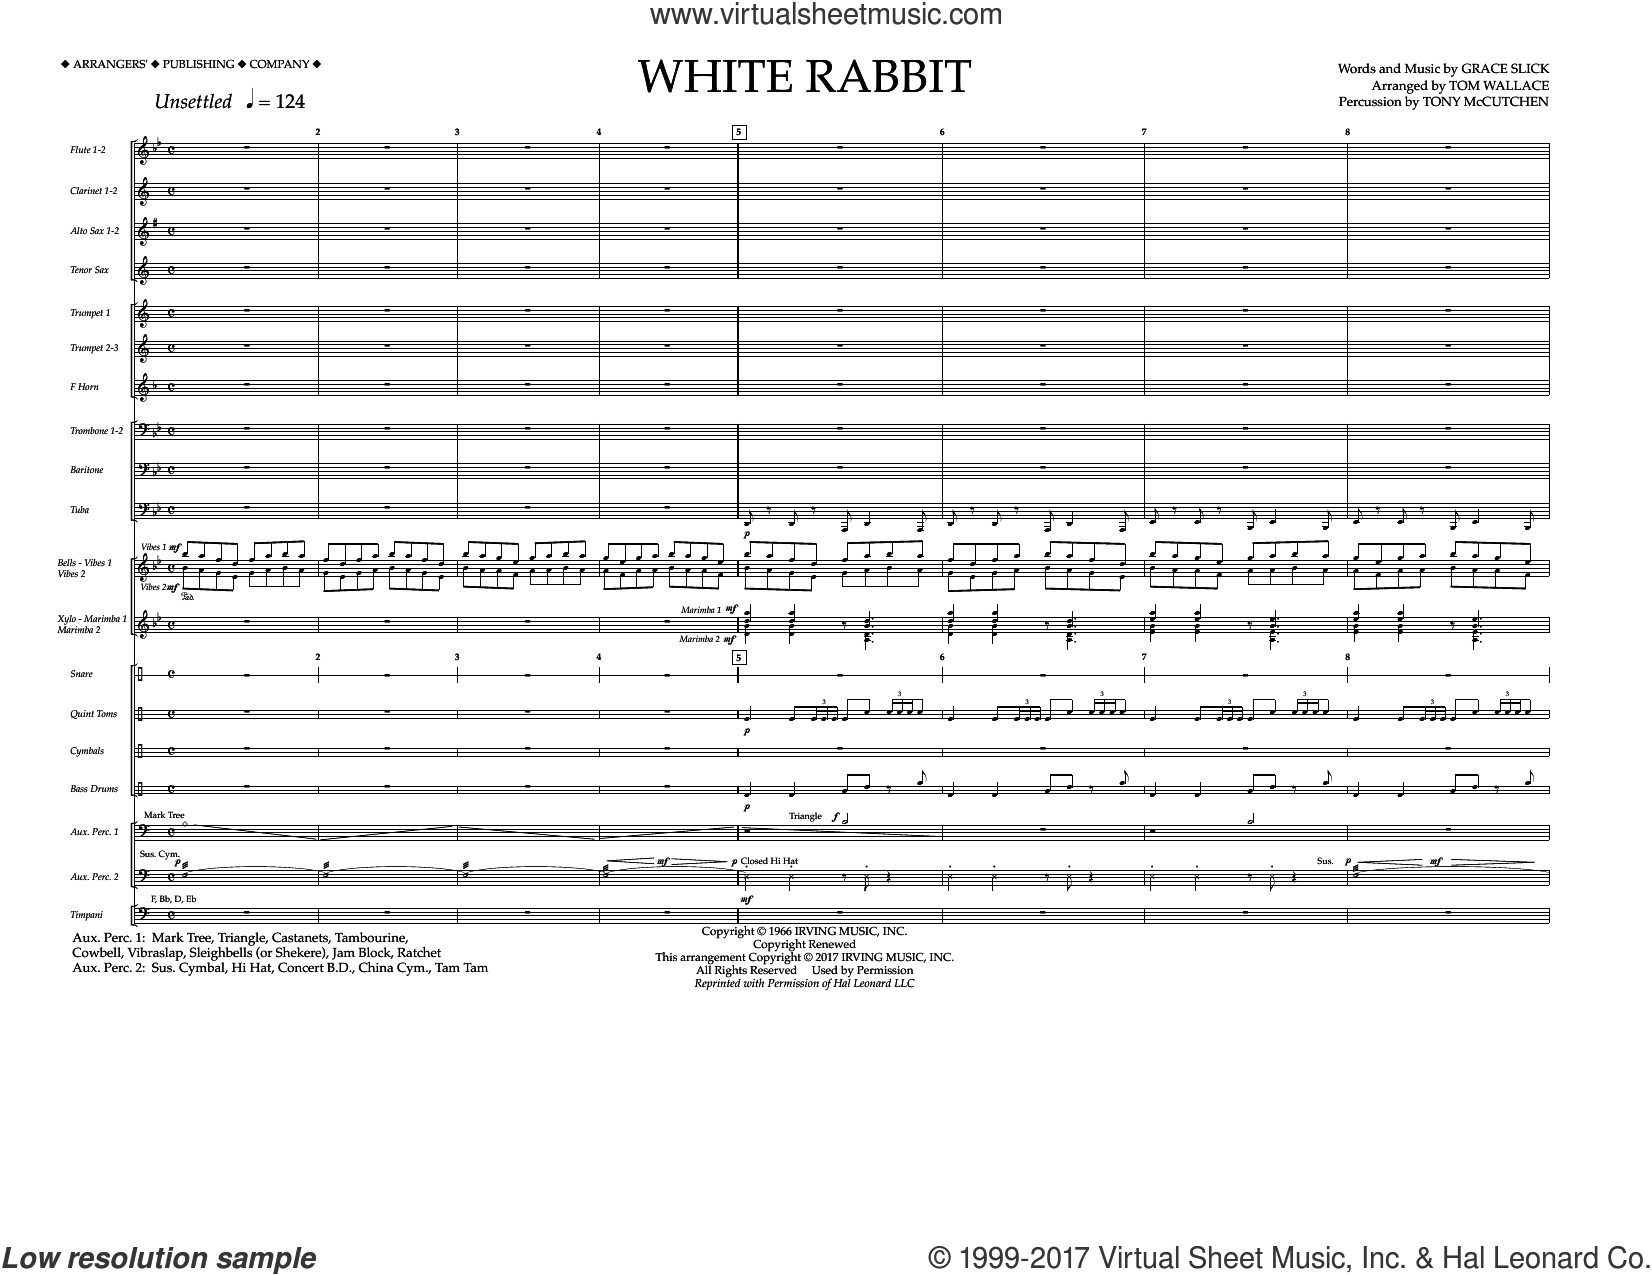 Wallace - White Rabbit sheet music (complete collection) for marching band